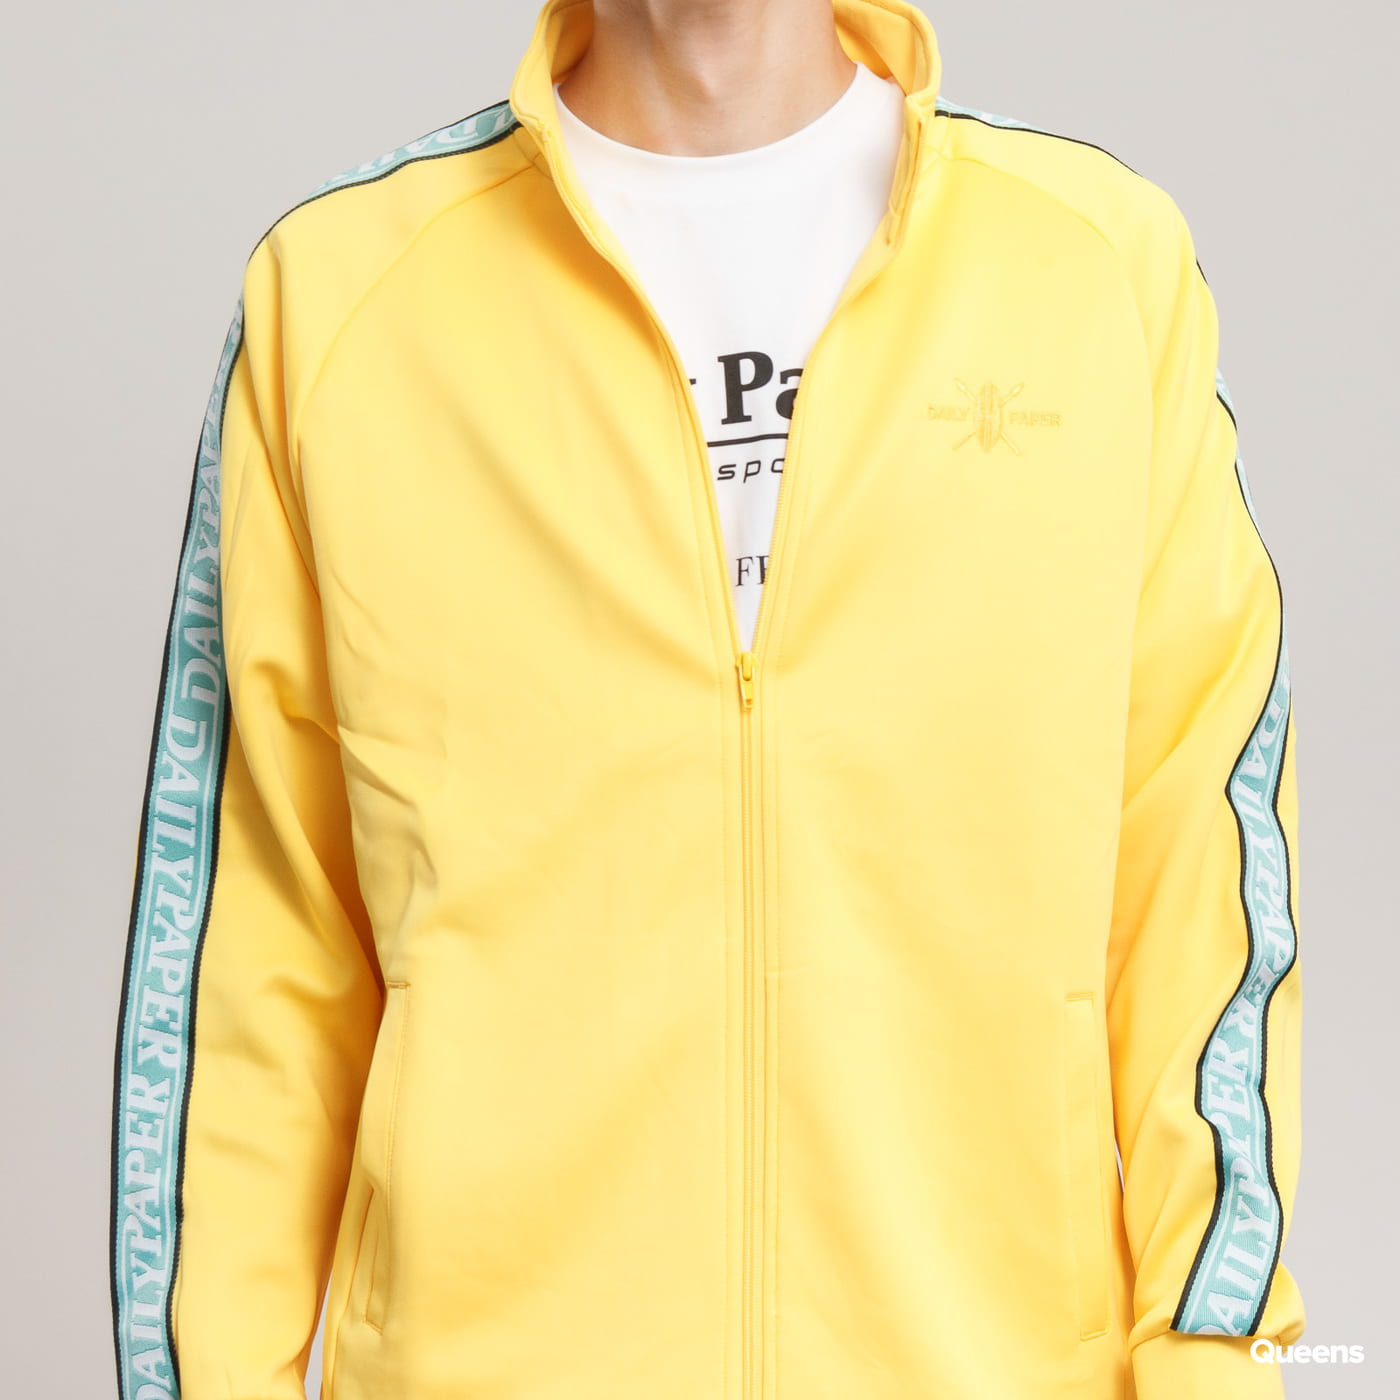 Daily Paper Dapevest Track Top gelb